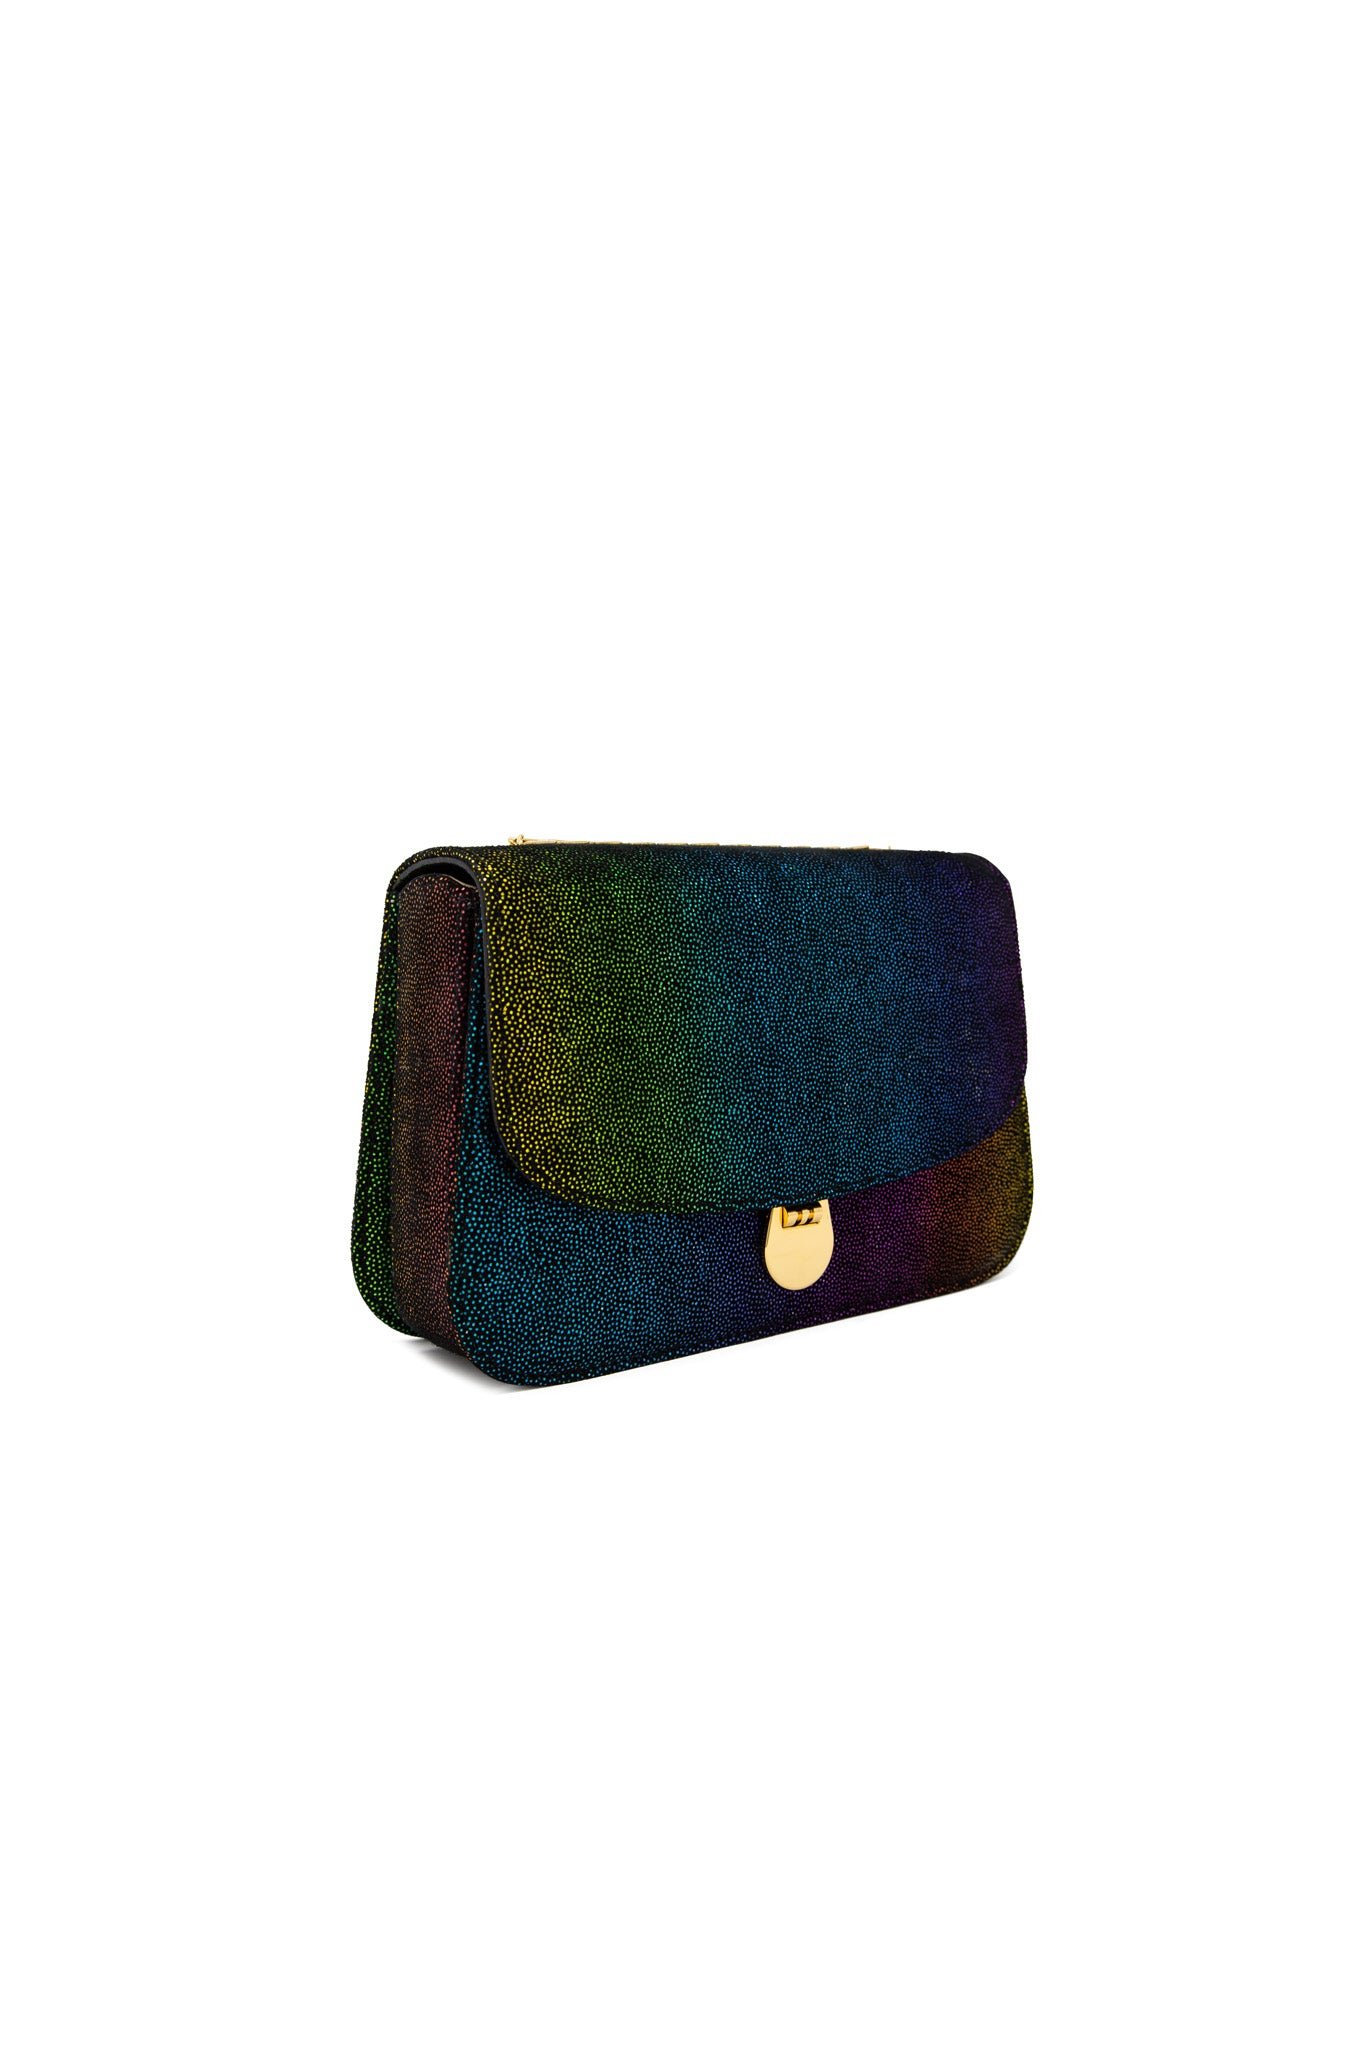 Sabi Shoulder Bag in Rainbow Leather